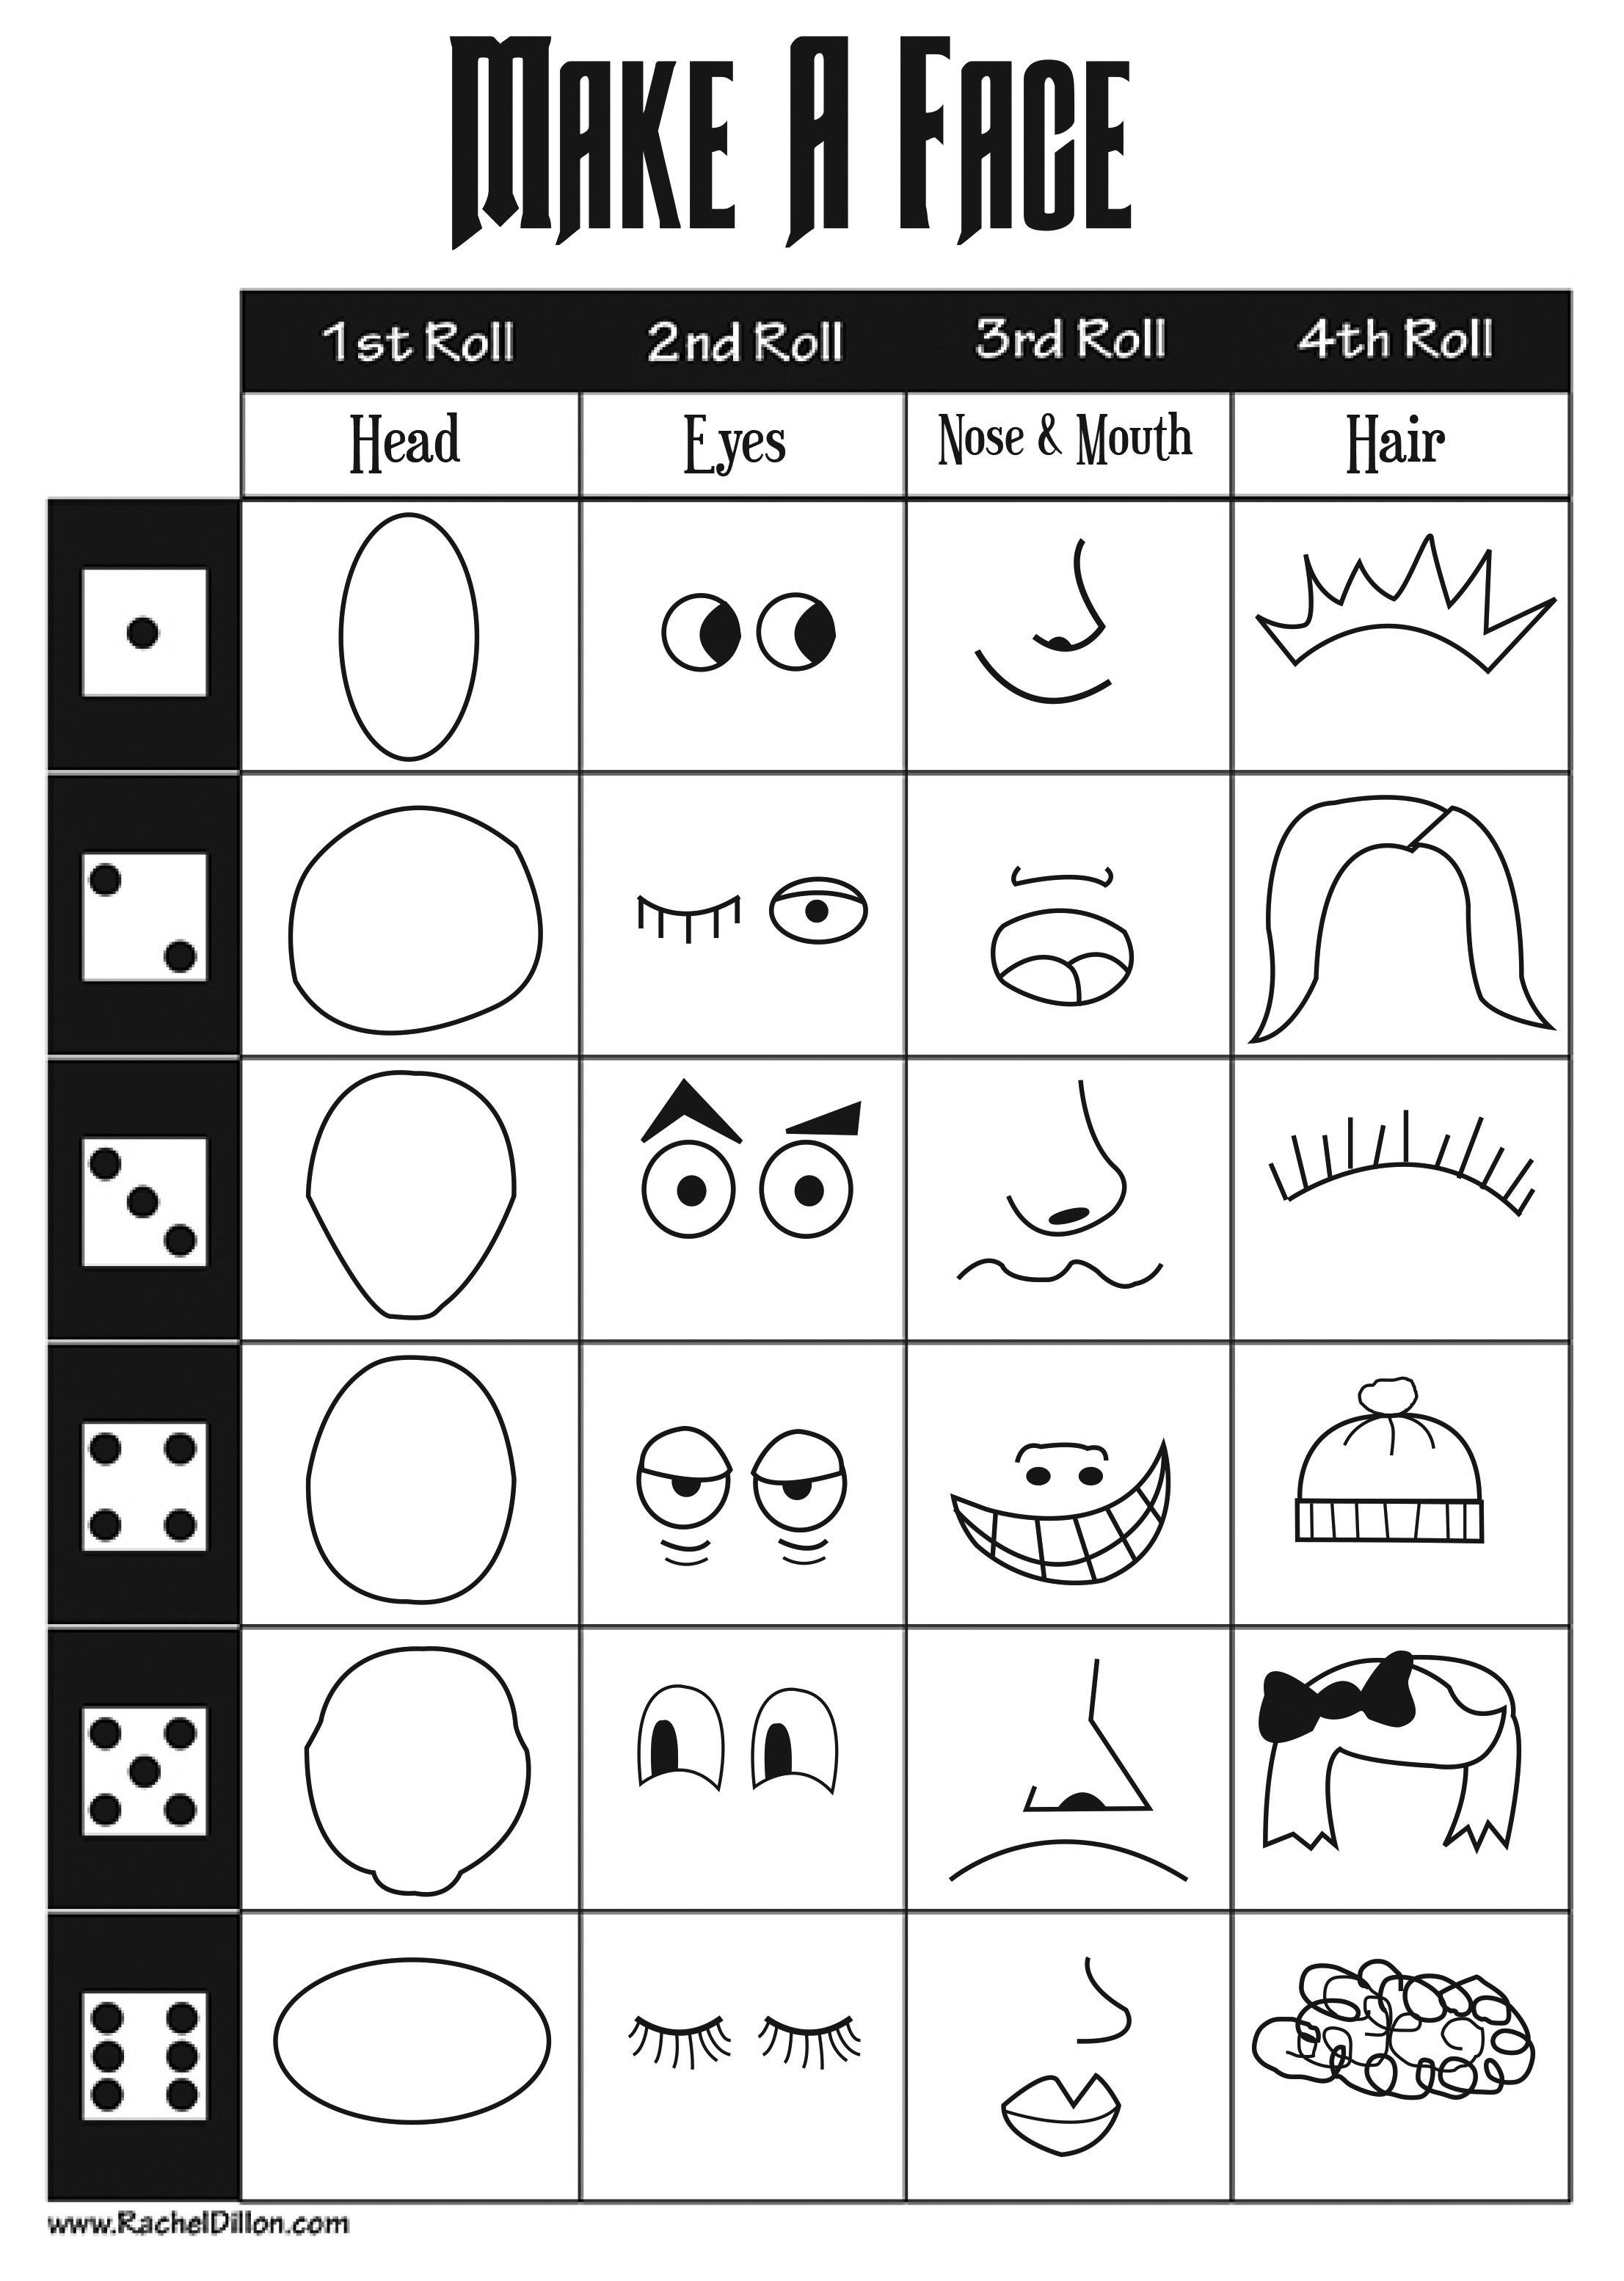 Make A Face Dice Game For Kids To Do This Is Great To